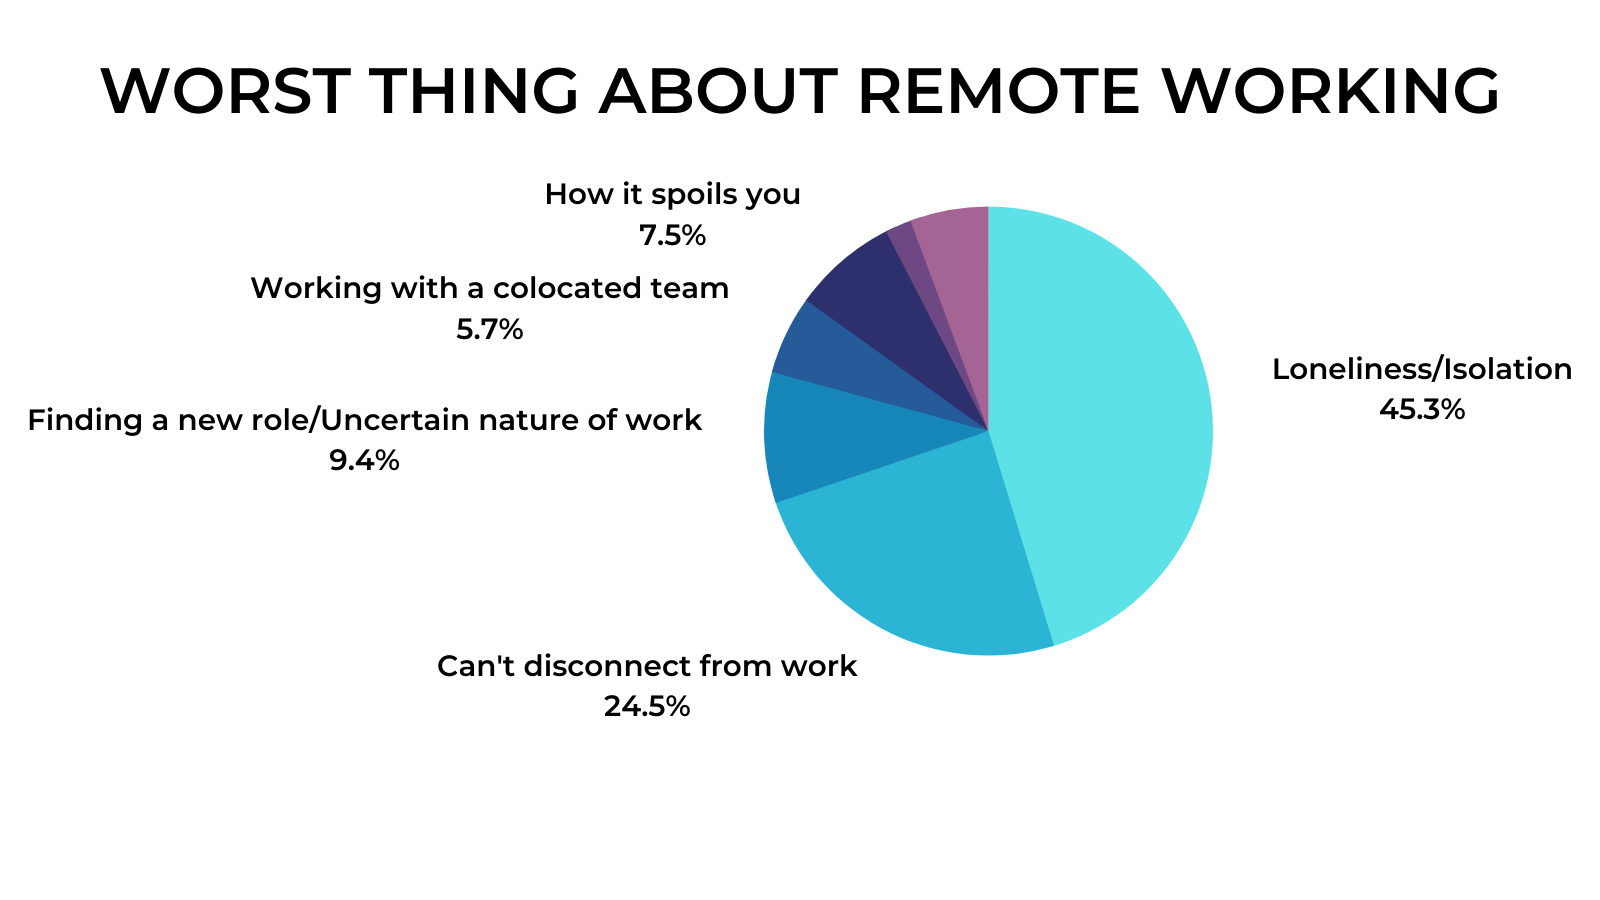 Remote Work Interviews - Worst thing about remote working